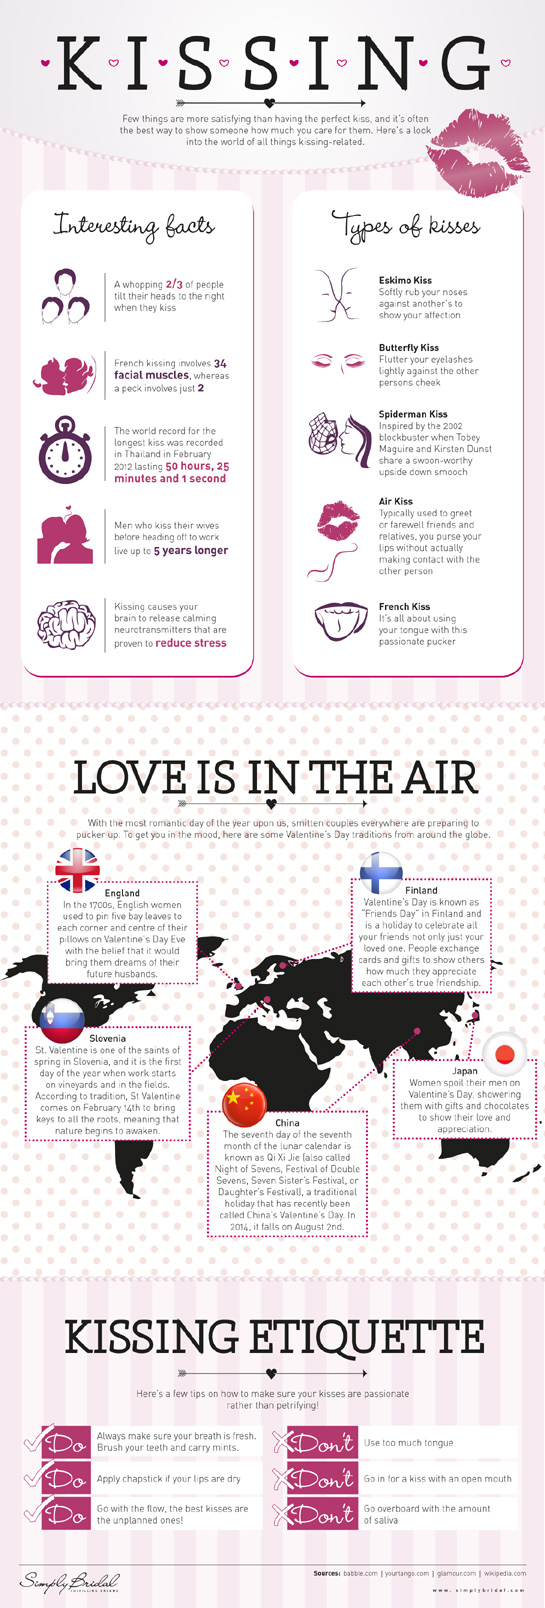 All Things Kissing Related - Infographic